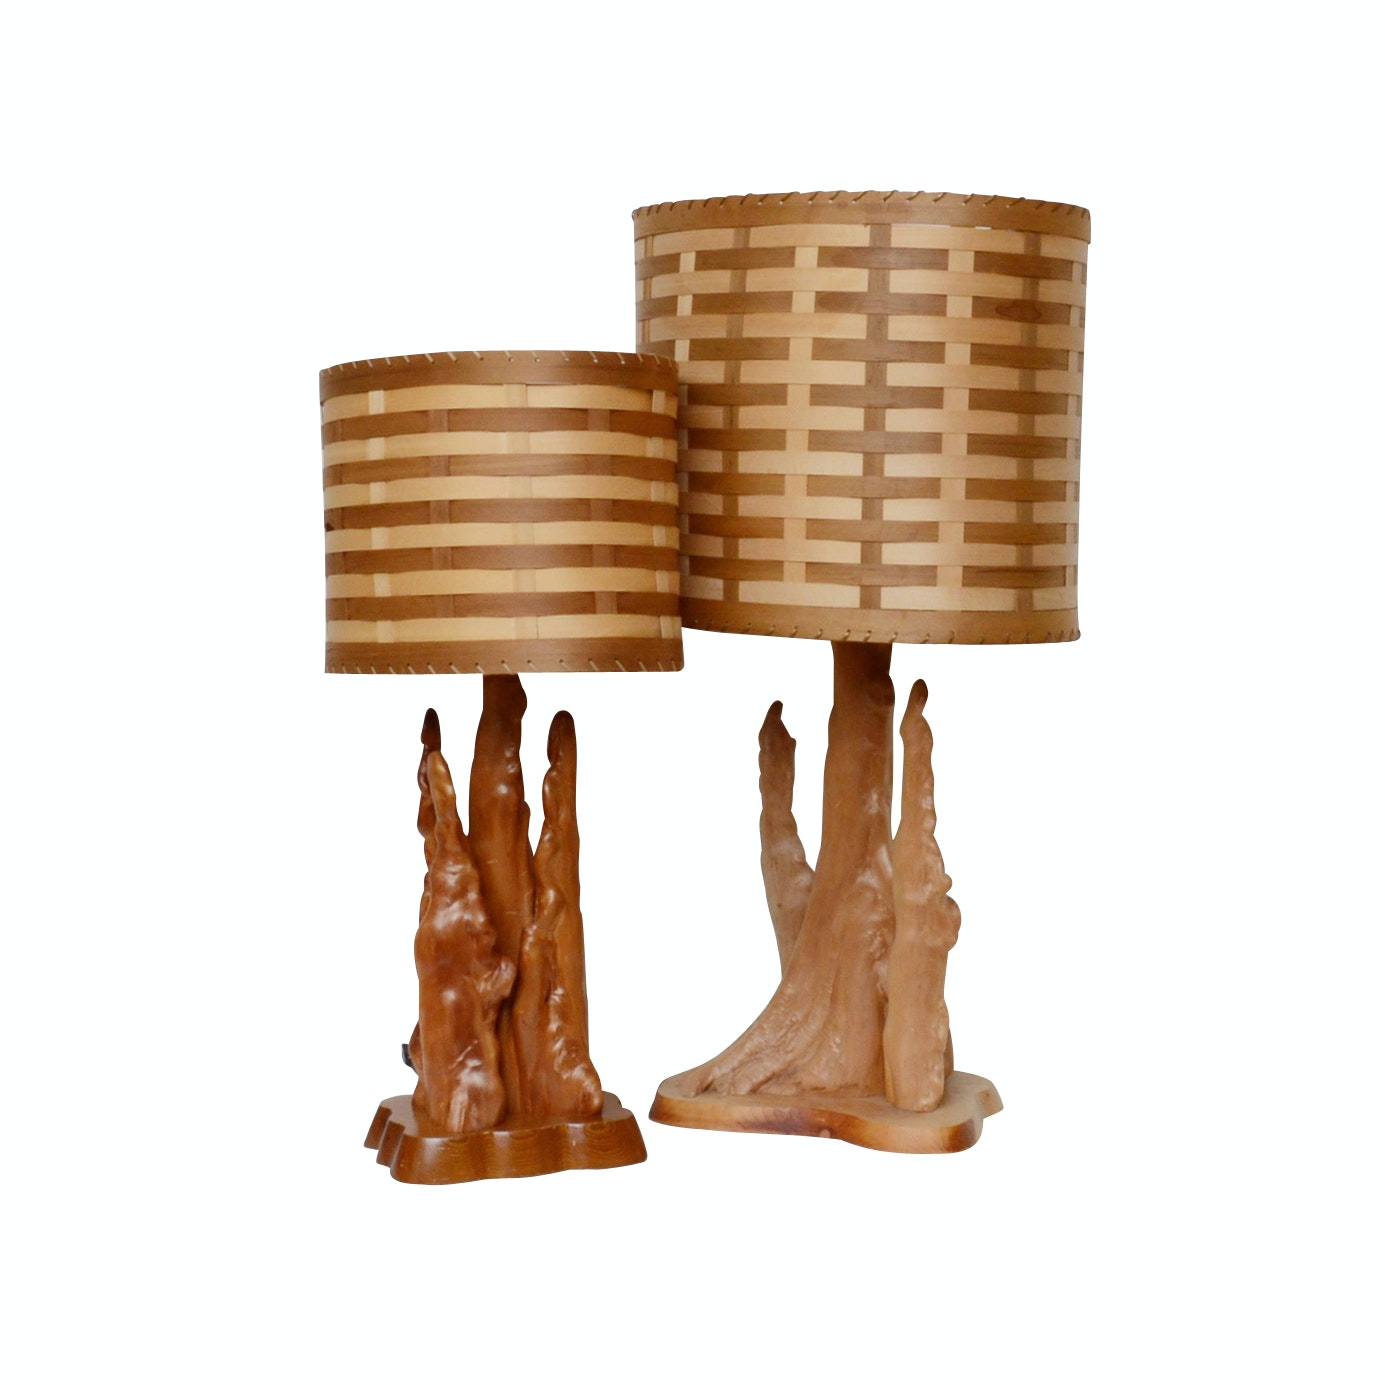 Pair of Cypress Wood Table Lamps with Woven Lamp Shades